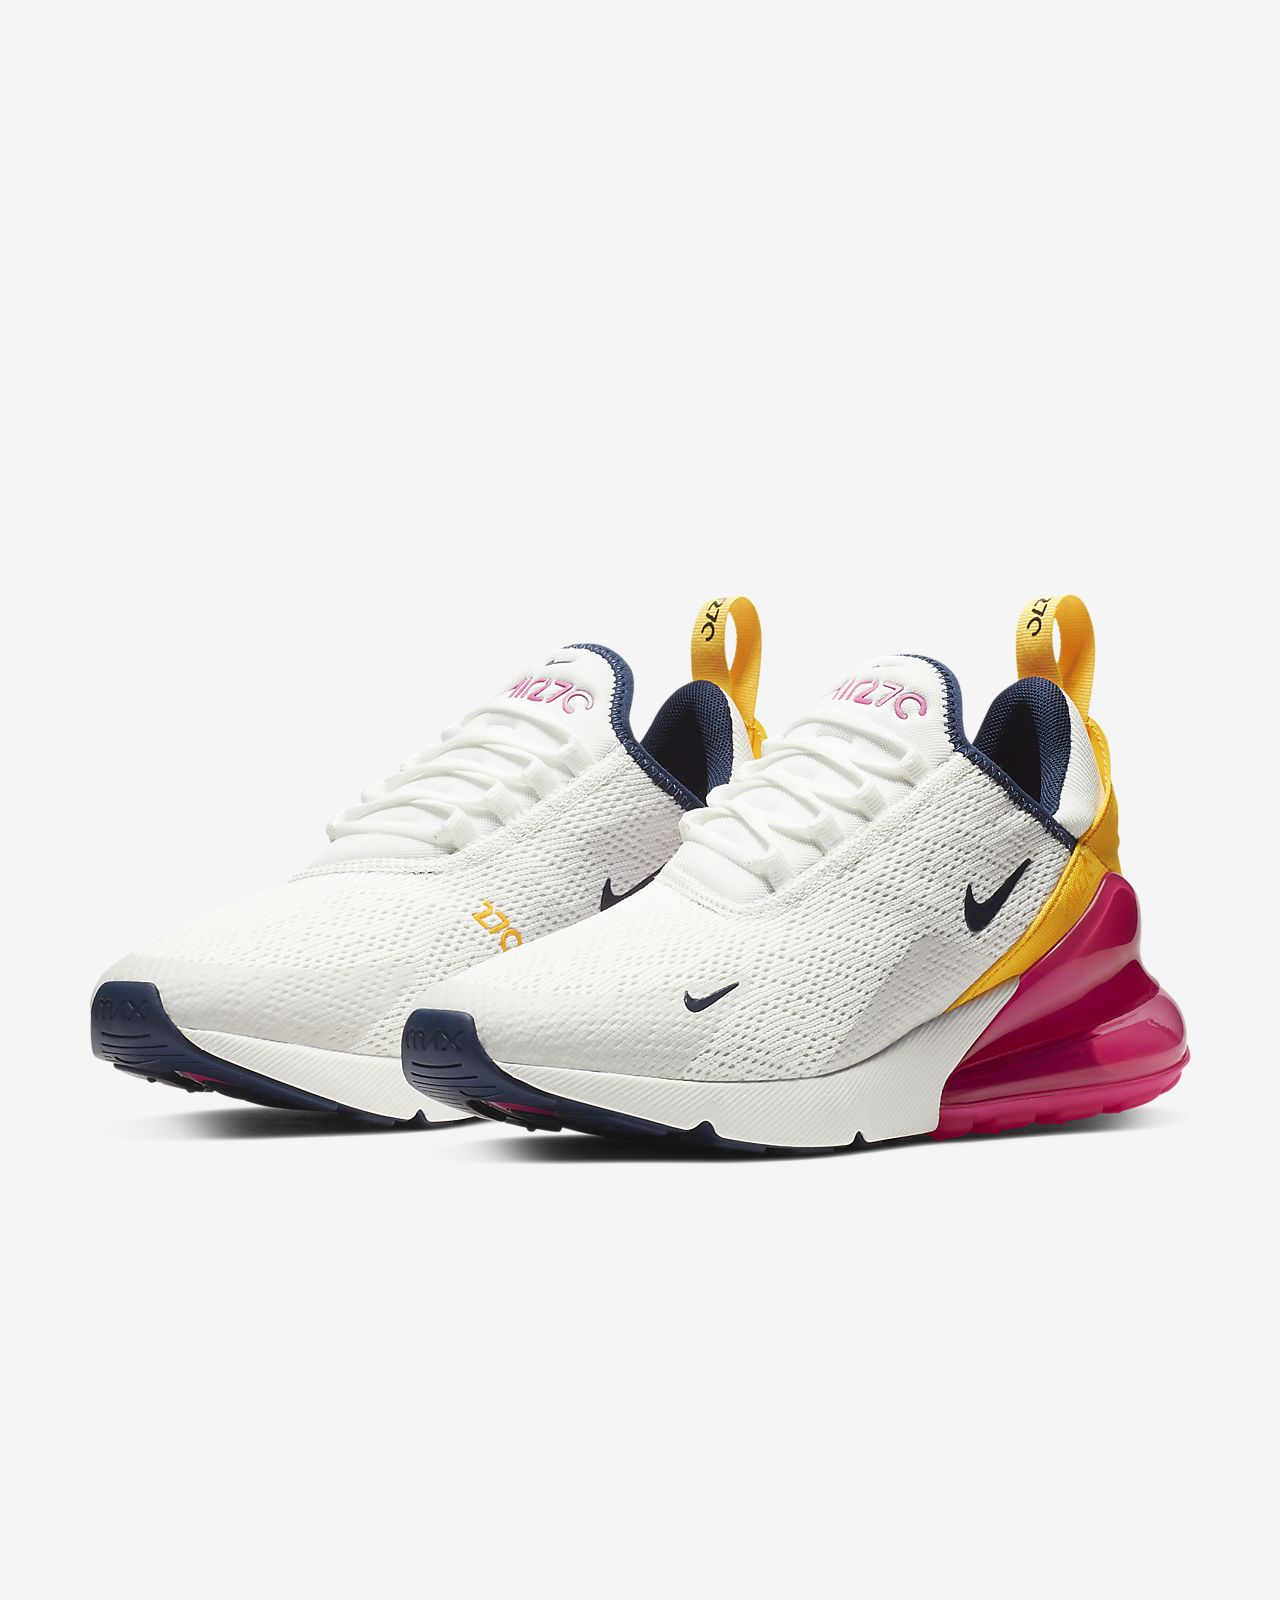 new products ab0e6 45ac5 ... Nike Air Max 270 Premium Women s Shoe